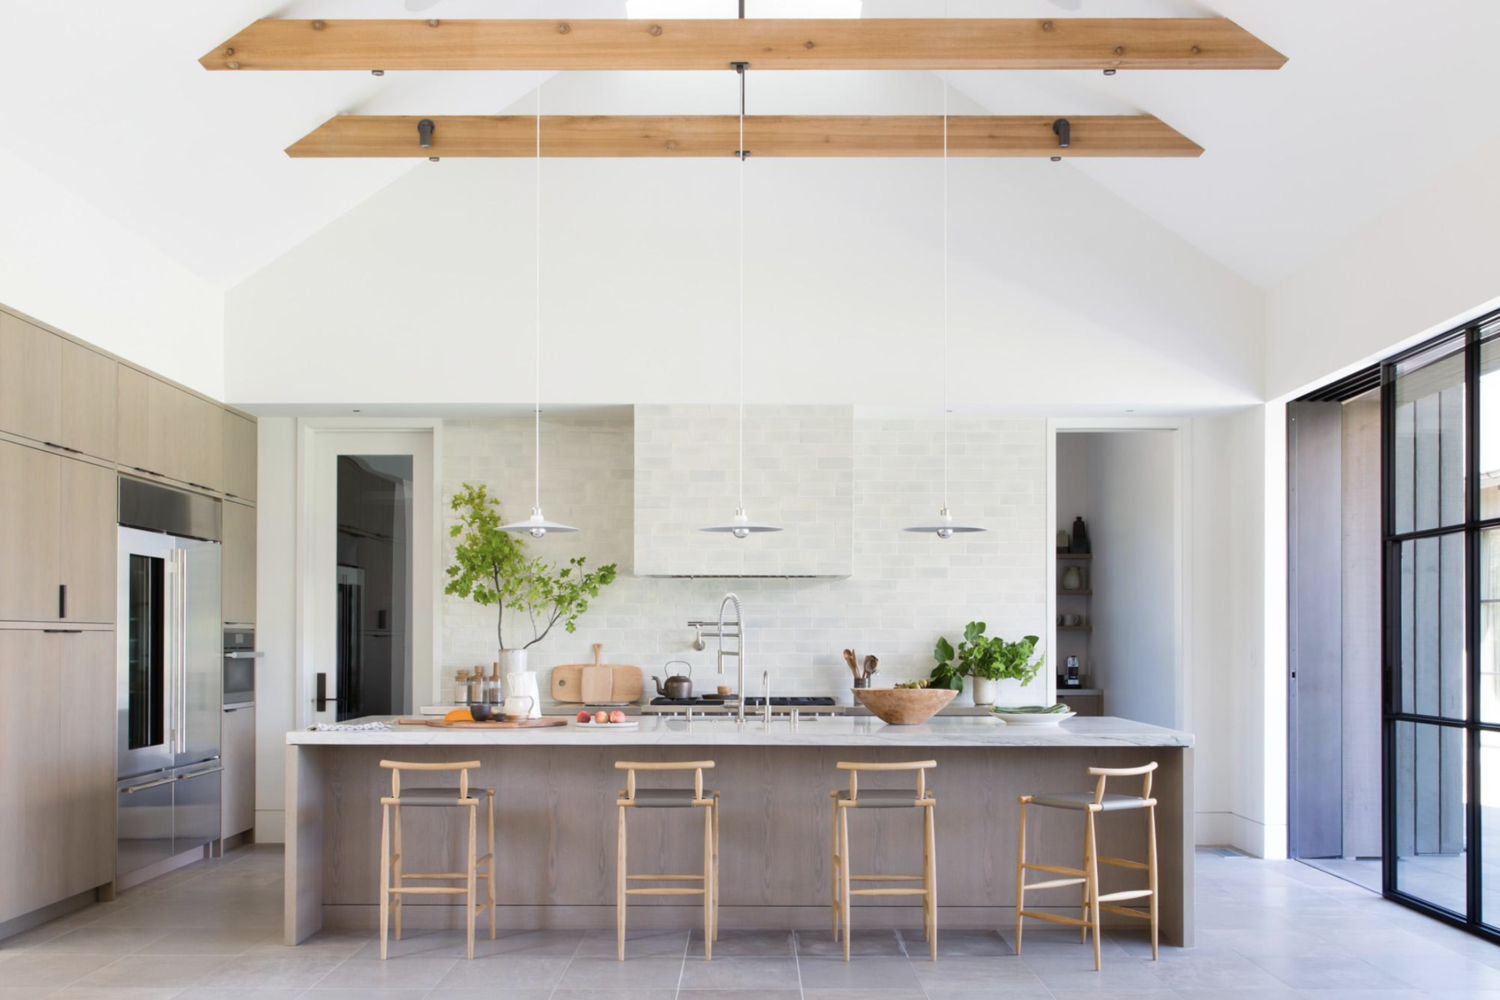 A large kitchen with loads of natural light greets you upon entering the home. Its sky-high vaulted ceiling is adorned with large exposed beams from which a trio of sleek pendants are hung.